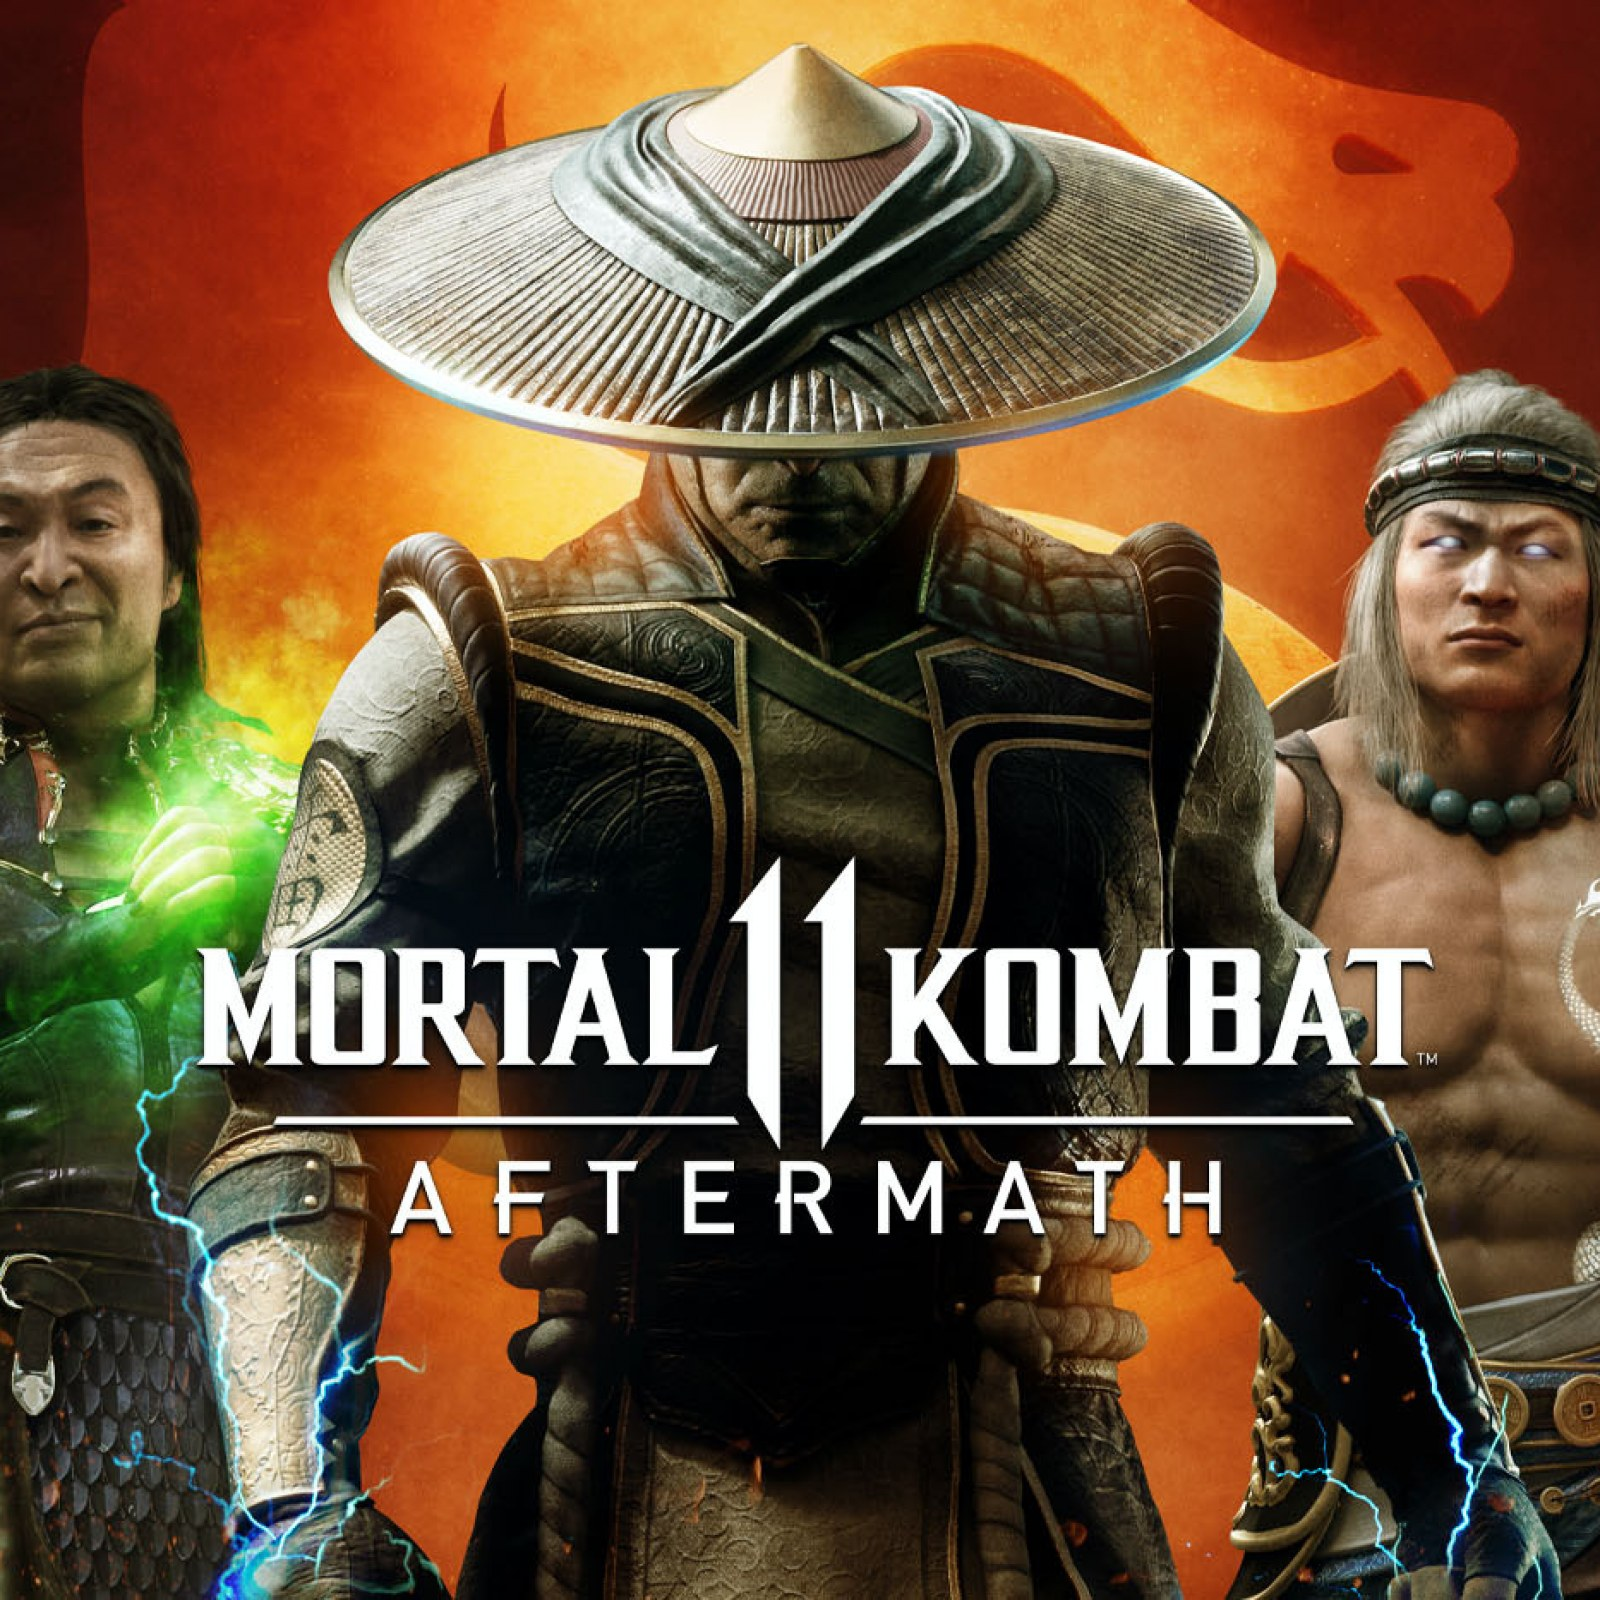 Mortal Kombat 11 Aftermath Release Time When Can You Start